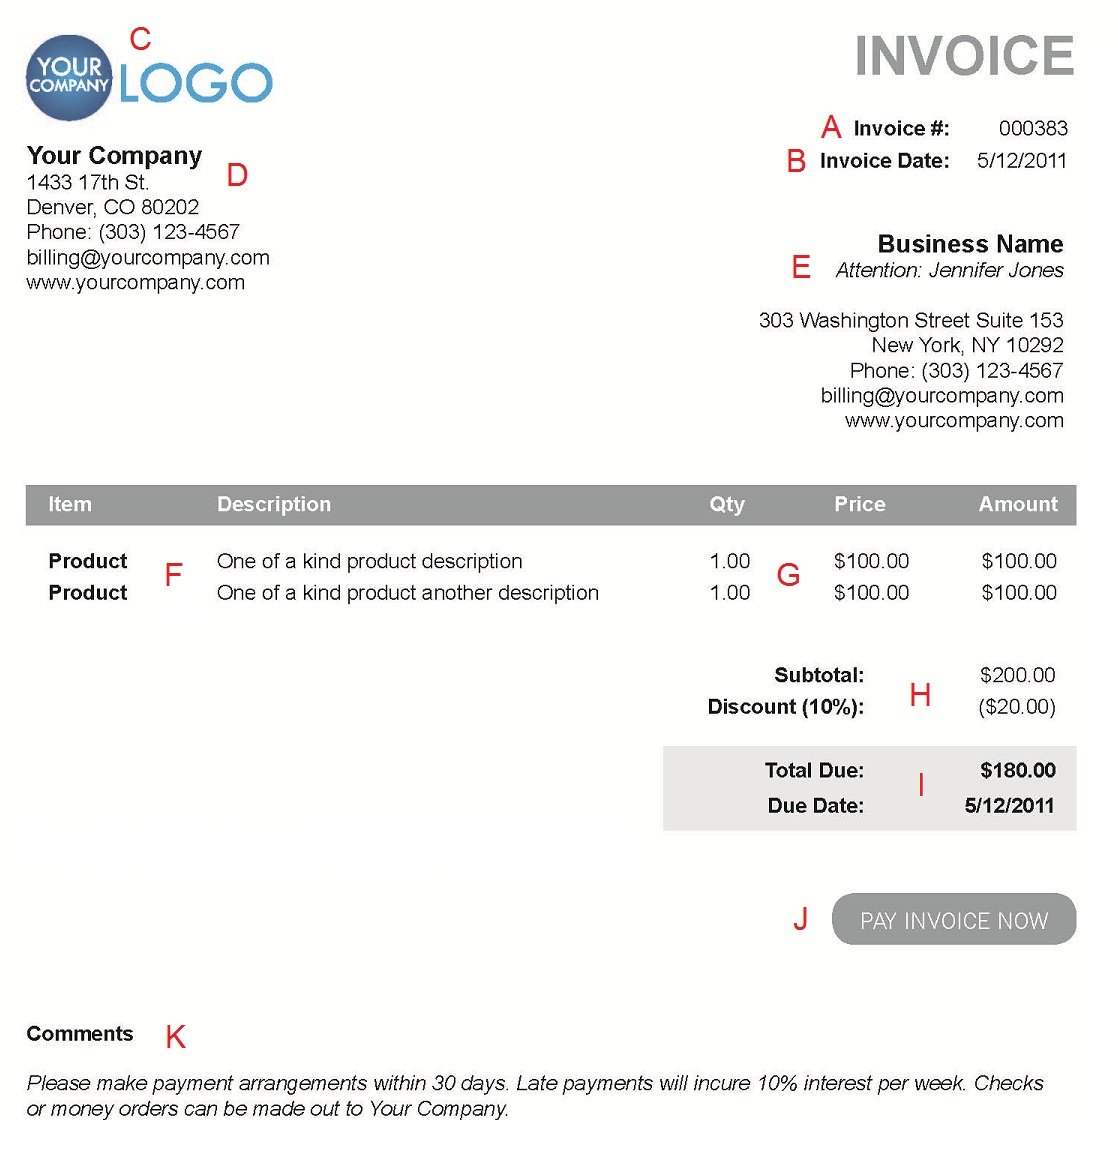 Breakupus  Stunning The  Different Sections Of An Electronic Payment Invoice With Fascinating A  With Awesome Professional Invoice Format Also Best Invoice Templates In Addition Purchase Order And Invoice Process And Peachtree Invoice As Well As Services Rendered Invoice Template Additionally Not Registered For Gst Invoice From Paysimplecom With Breakupus  Fascinating The  Different Sections Of An Electronic Payment Invoice With Awesome A  And Stunning Professional Invoice Format Also Best Invoice Templates In Addition Purchase Order And Invoice Process From Paysimplecom